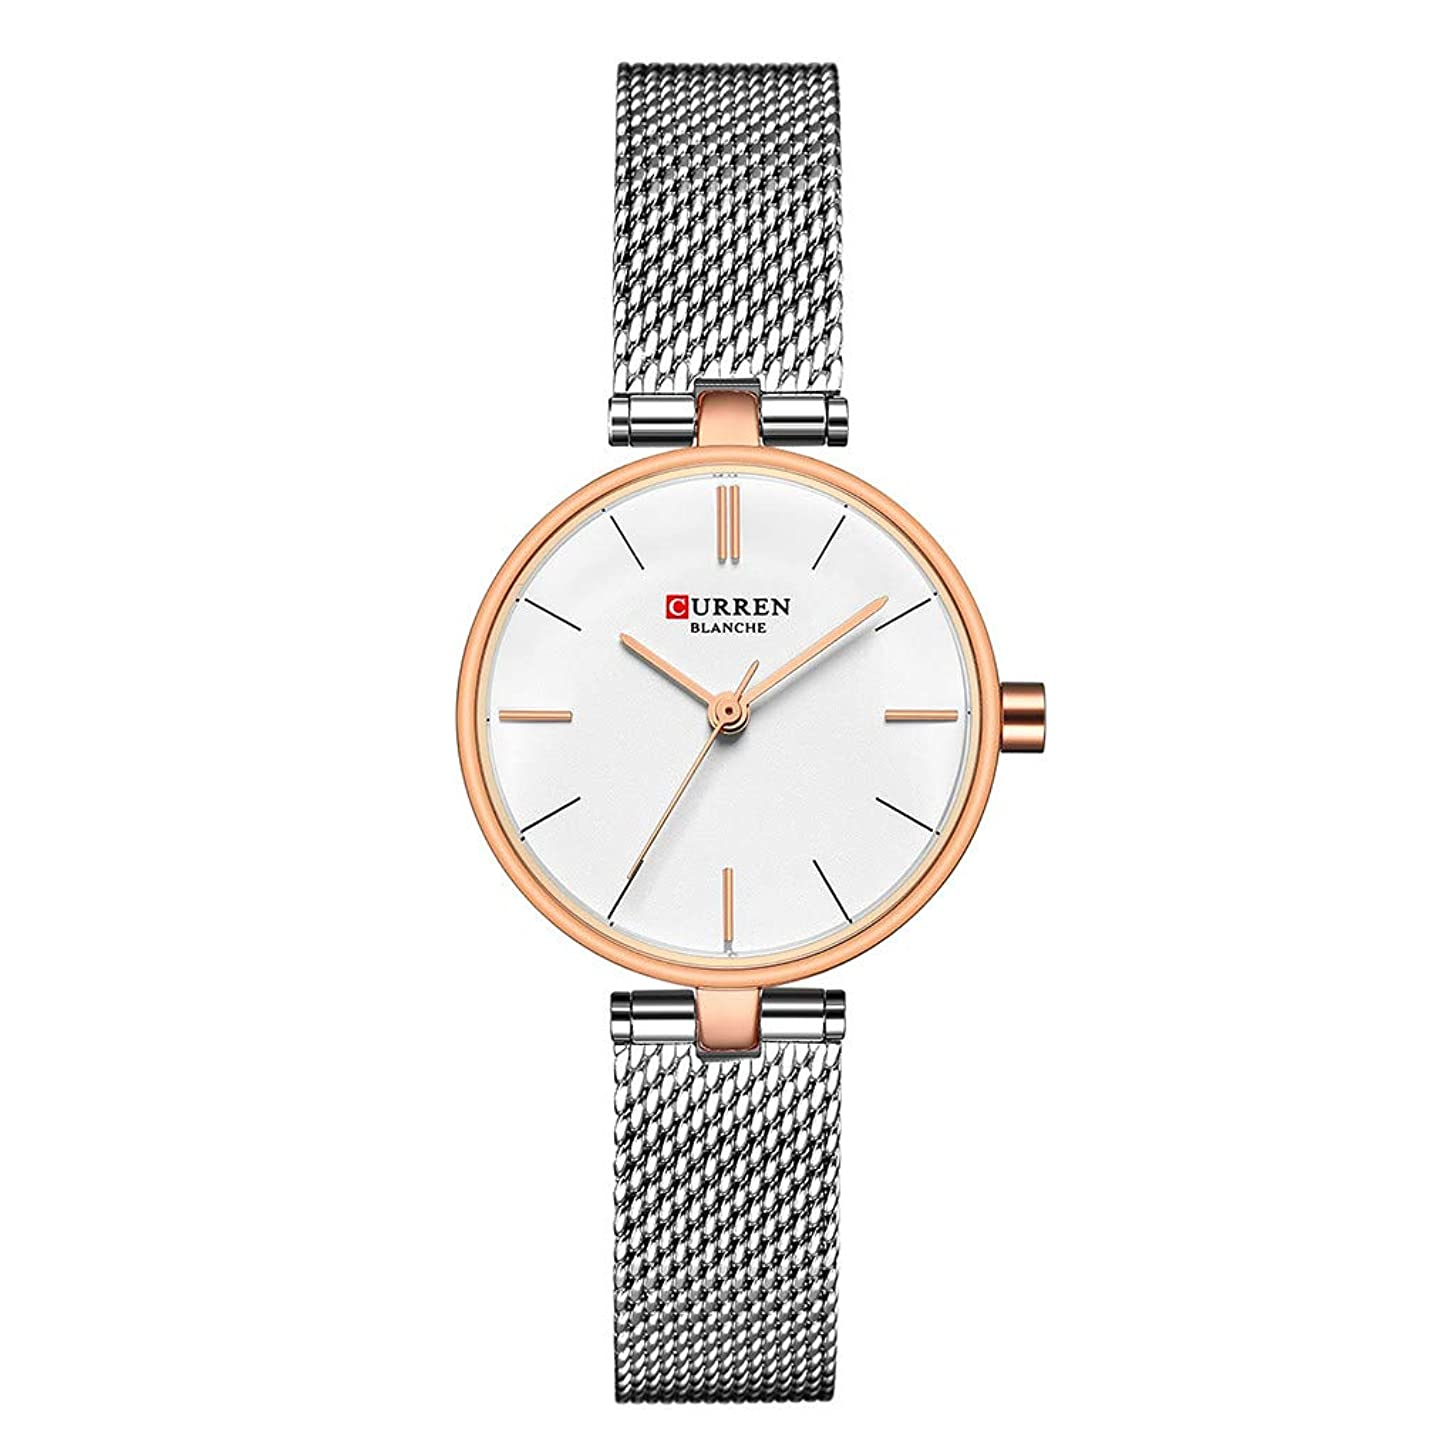 LUCAMORE Ultra Thin Quartz Stainless Steel Mesh Band Women's Watch Fashion Simple Analog Wrist Watches